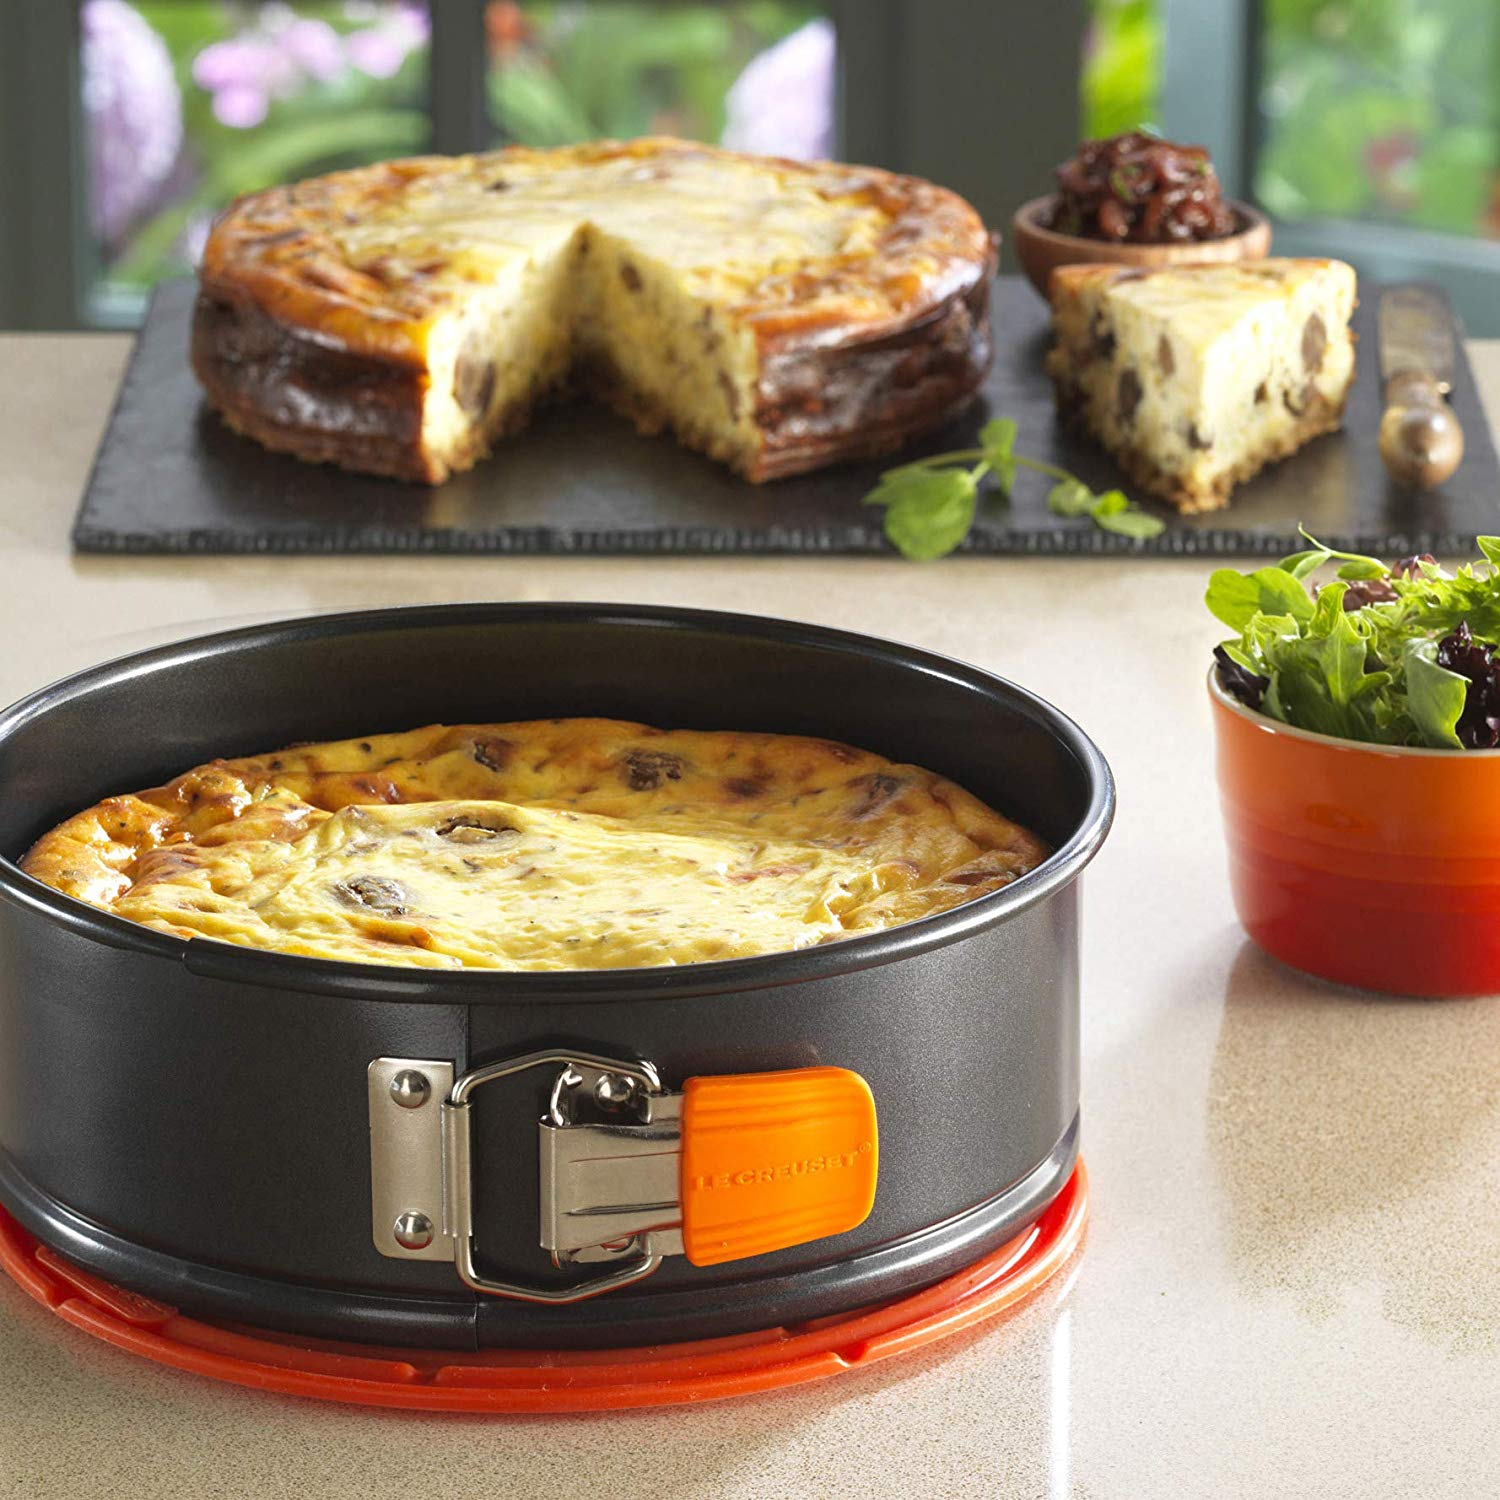 Le Creuset Round Spring Form Pan Canada